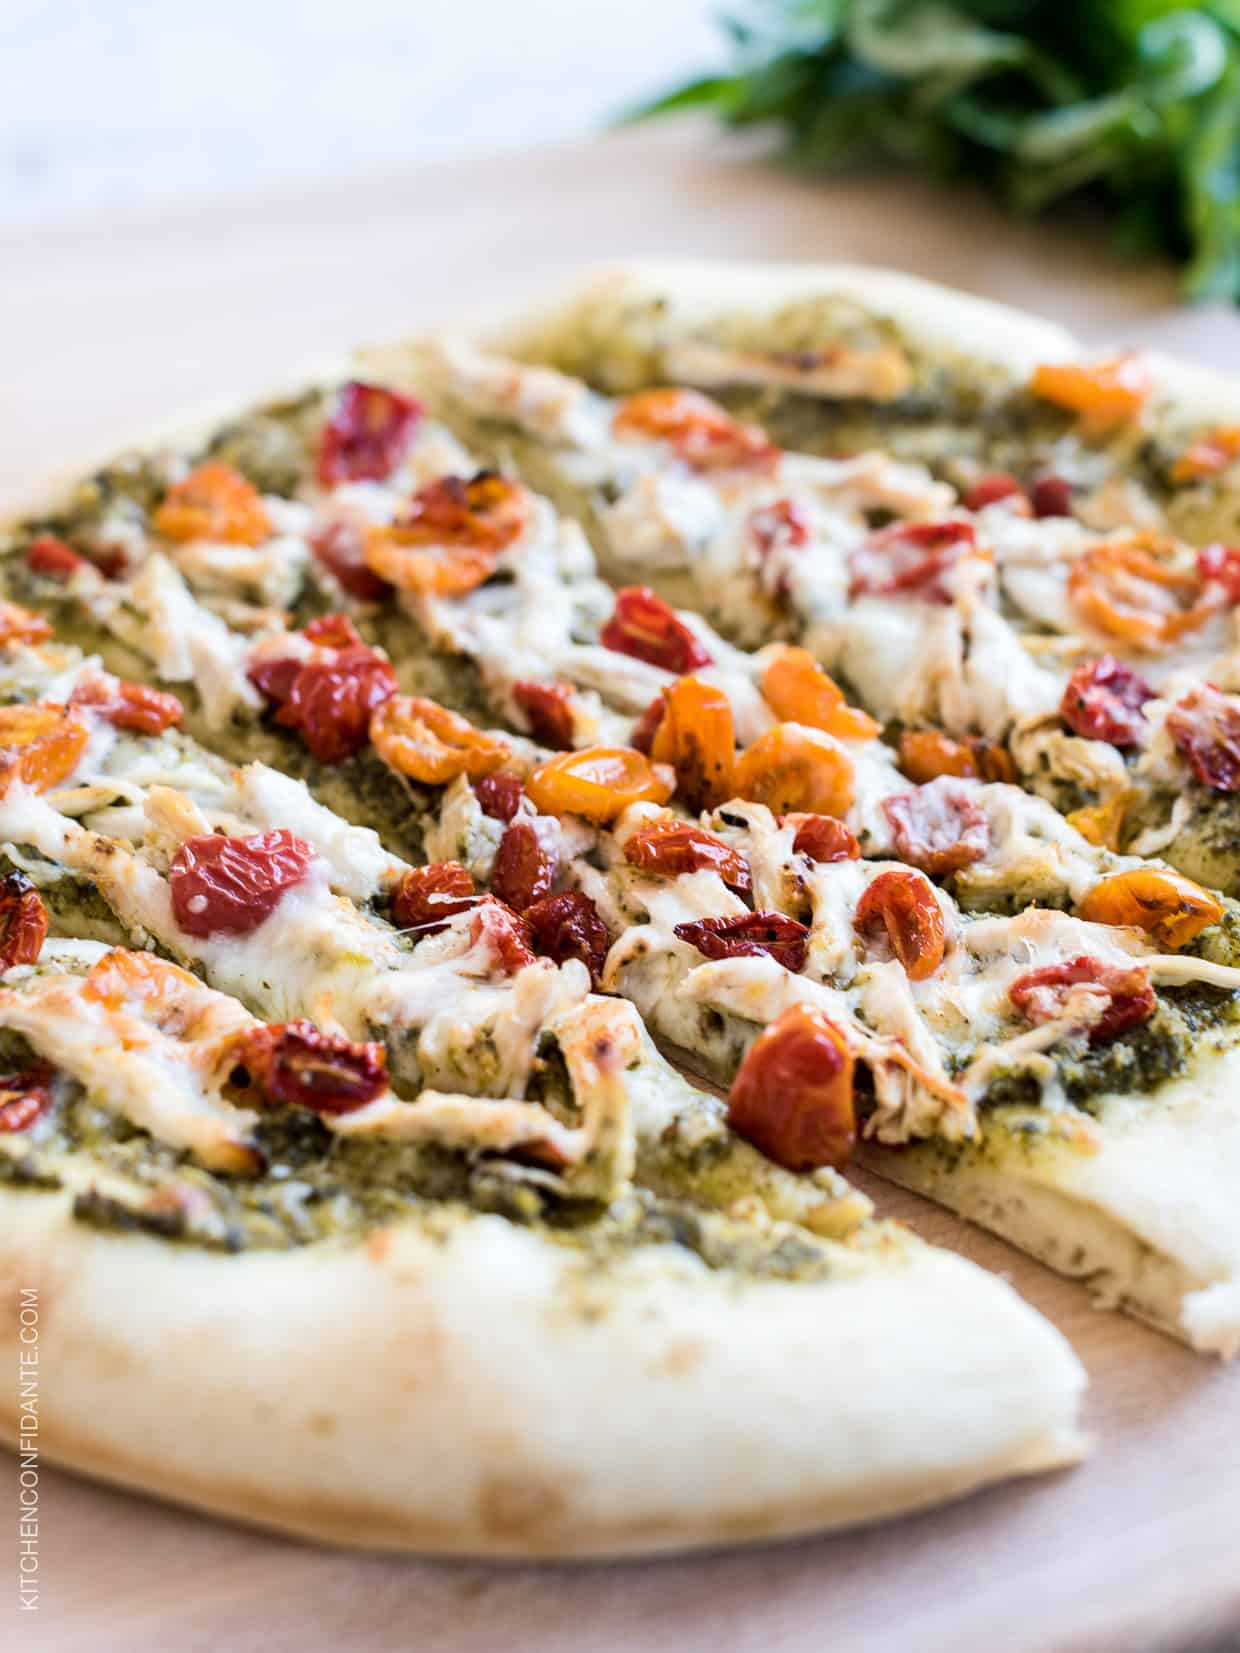 Chicken Pesto Pizza sliced on a wood board.